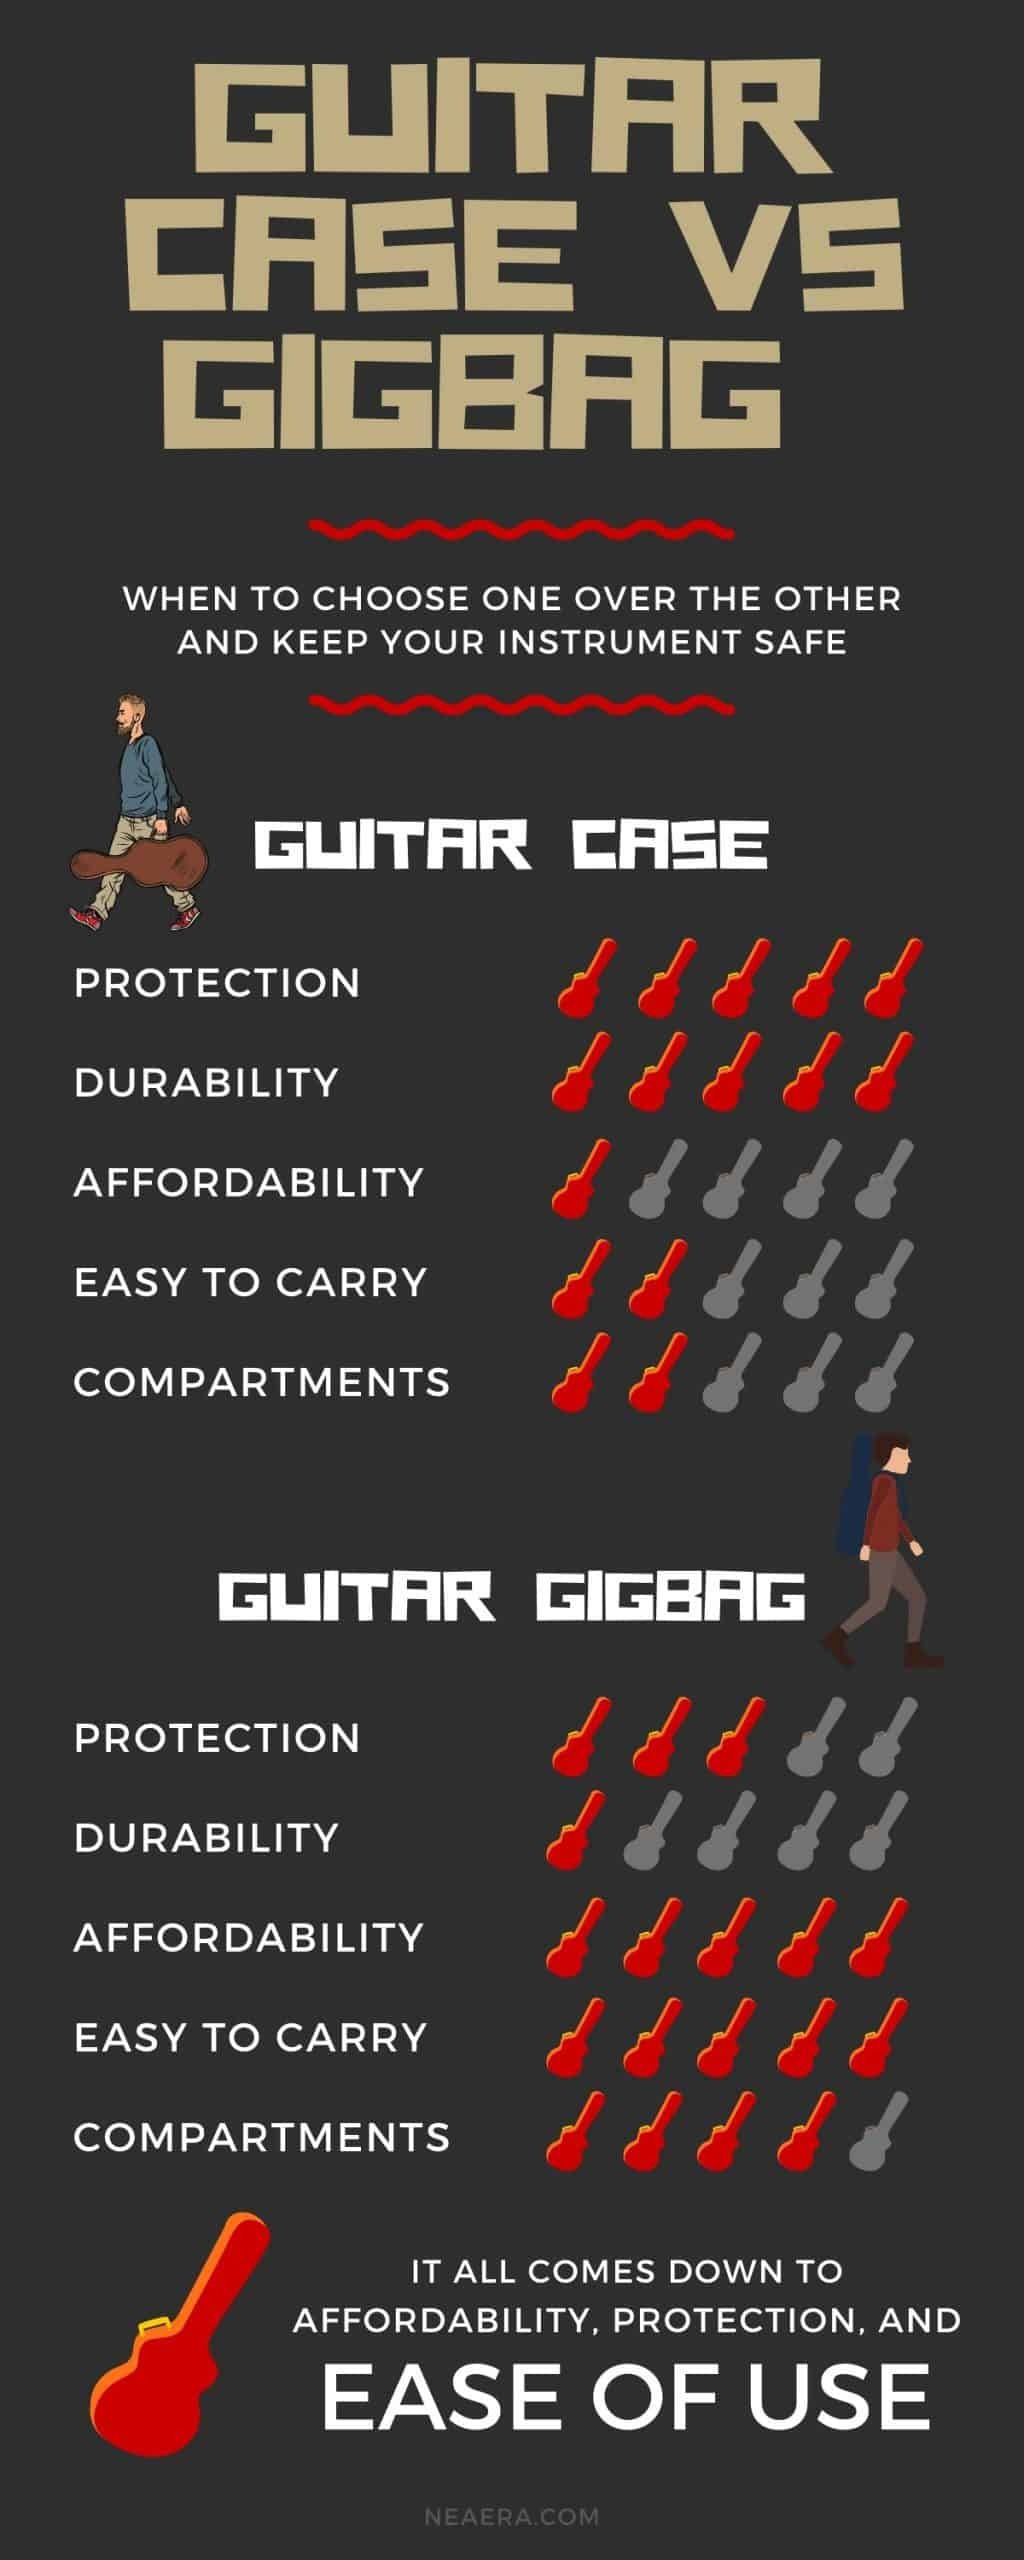 How to choose between a guitar case and gigbag